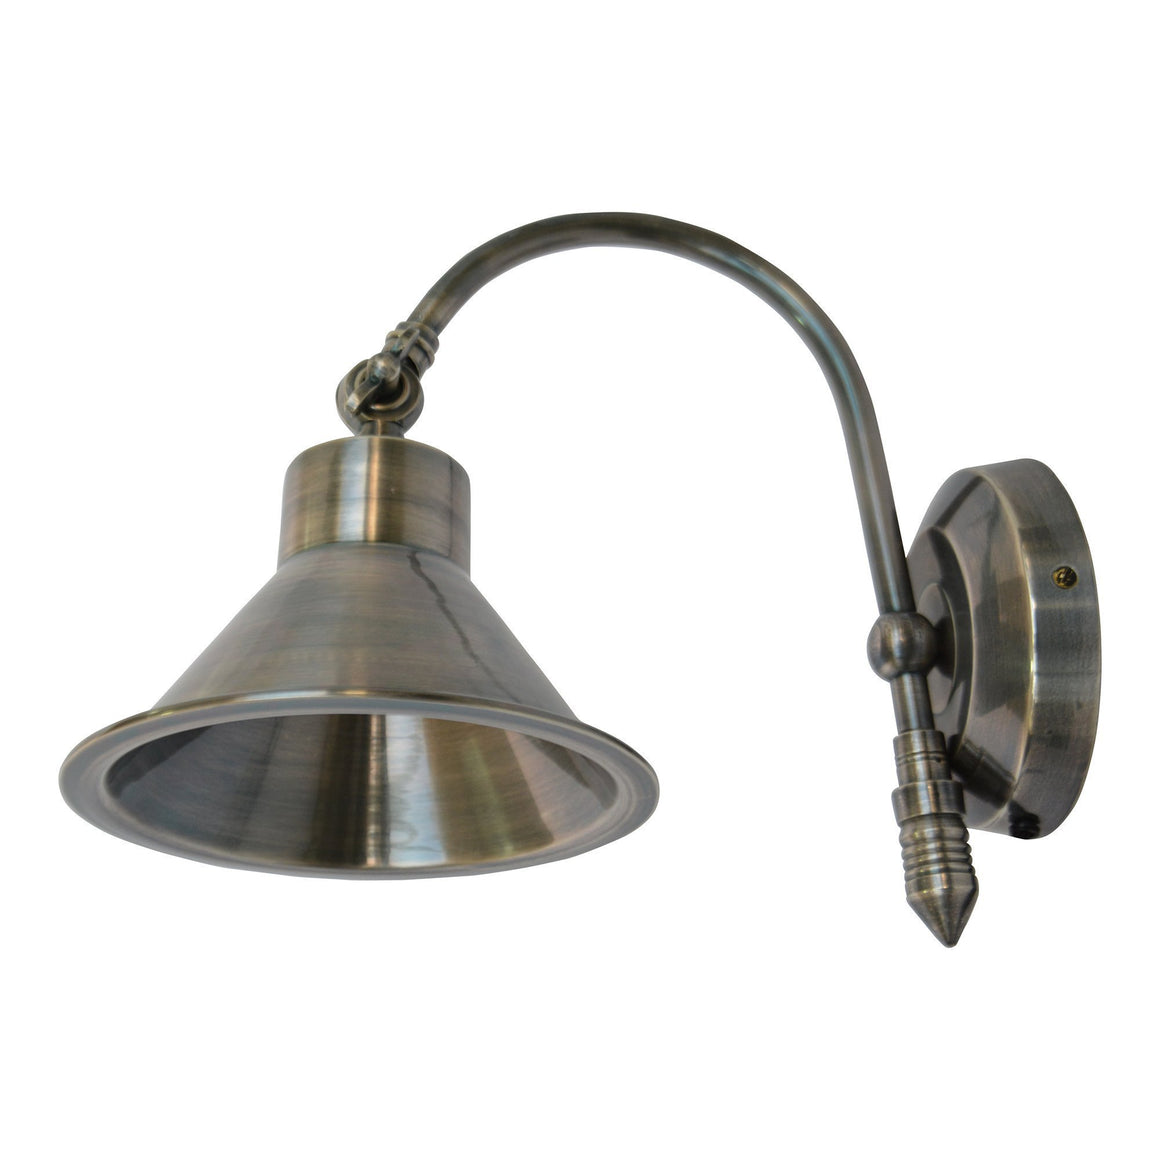 ANT SILVER BELL WALL SCONCE